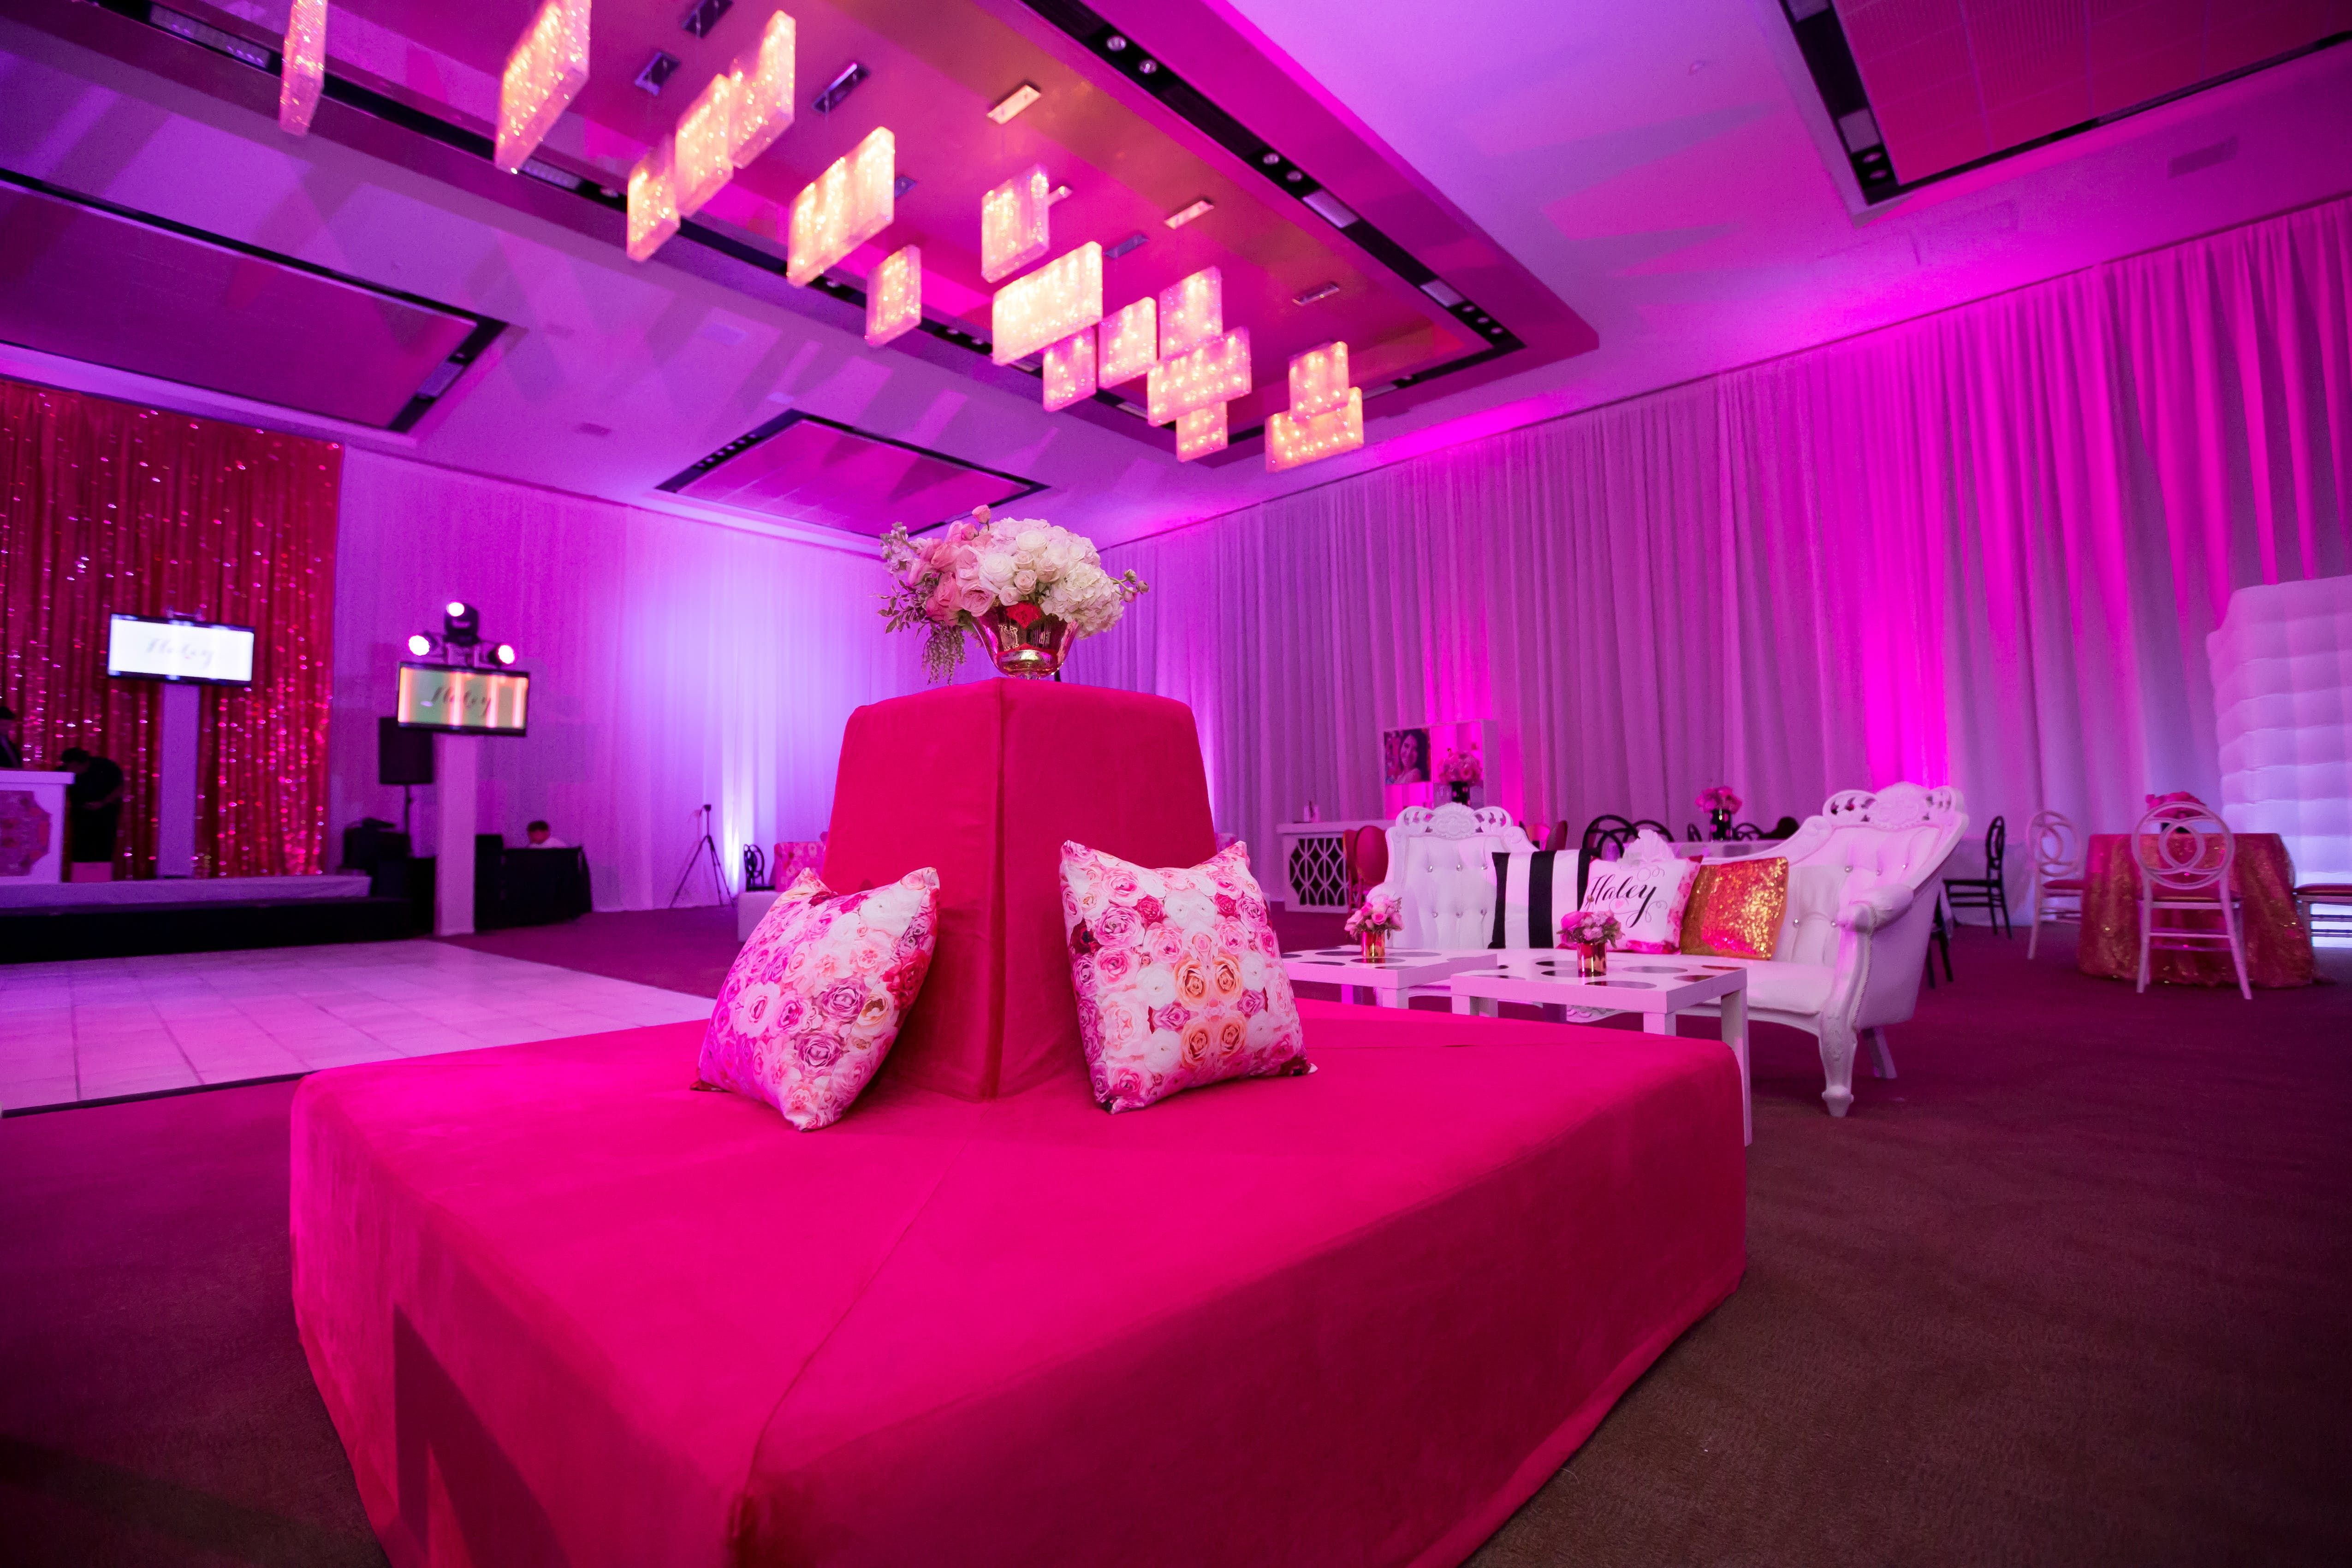 Black Pink Mod Bat Mitzvah Party Rentals And Decor By Gilded Group Decor Miami Event Design Miami Event Decor Miami Even Event Decor Event Design Event